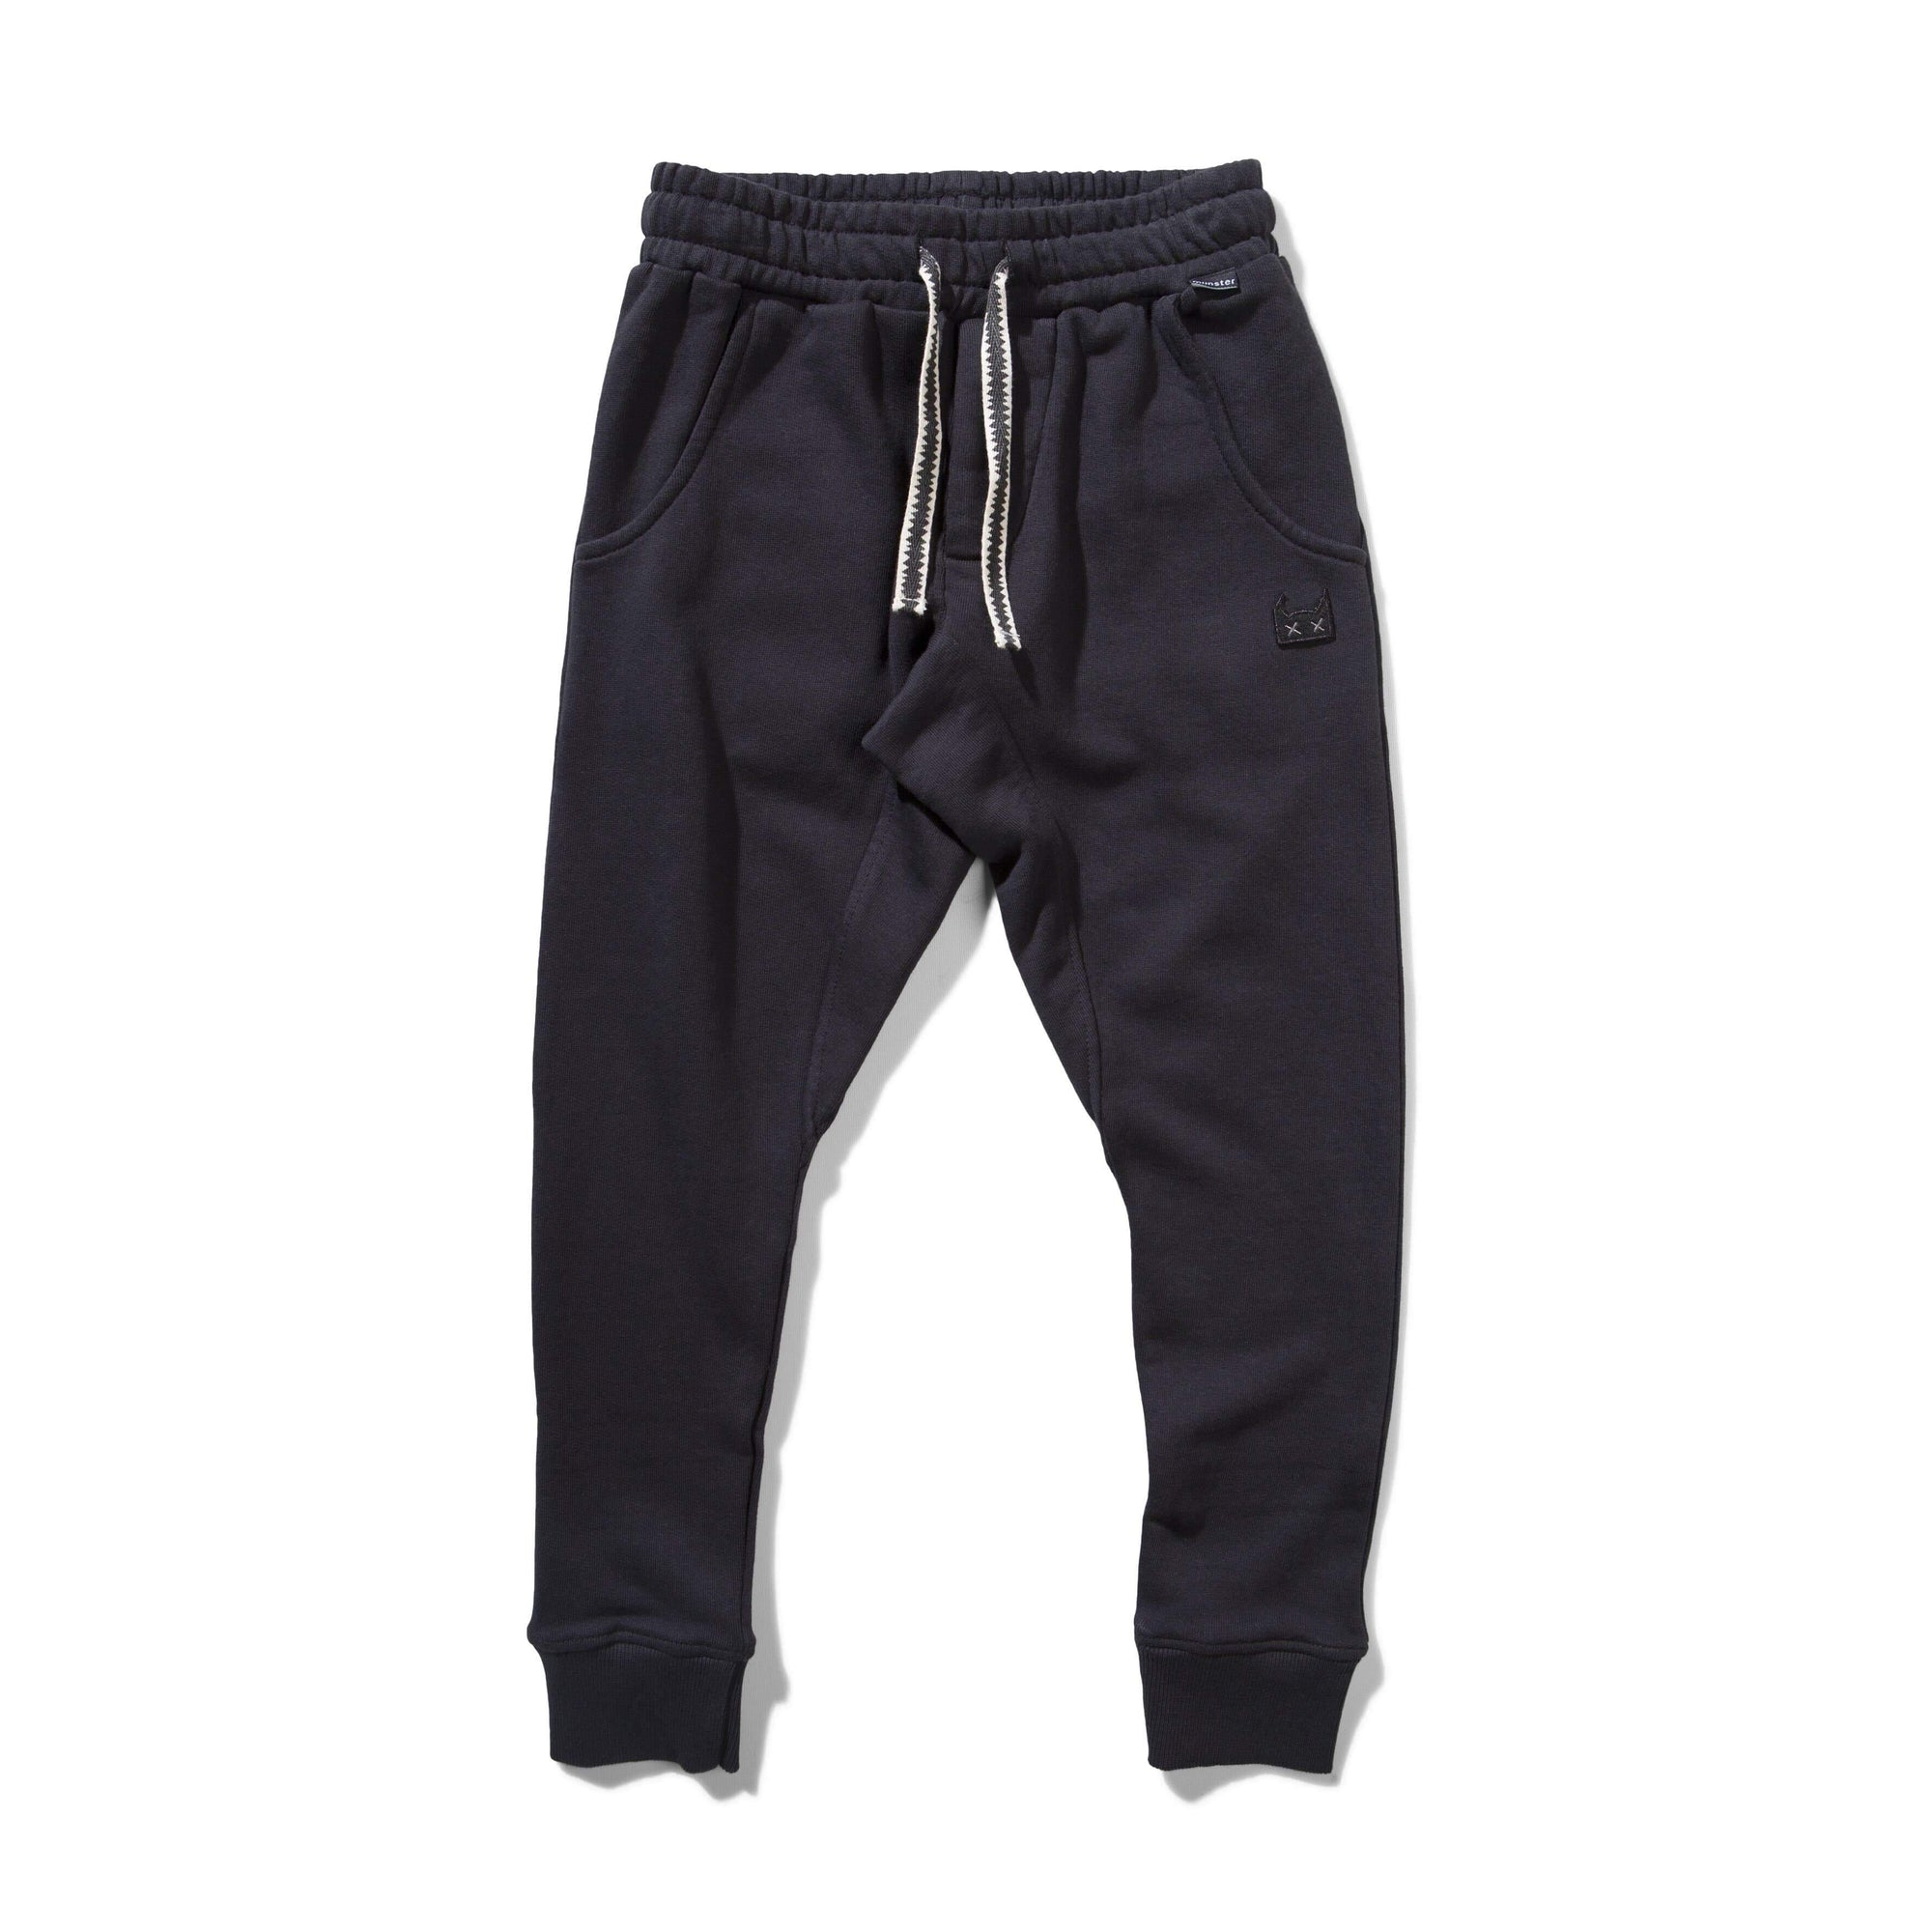 Munster Track Pants Daynight Trackpant - Pigment Black